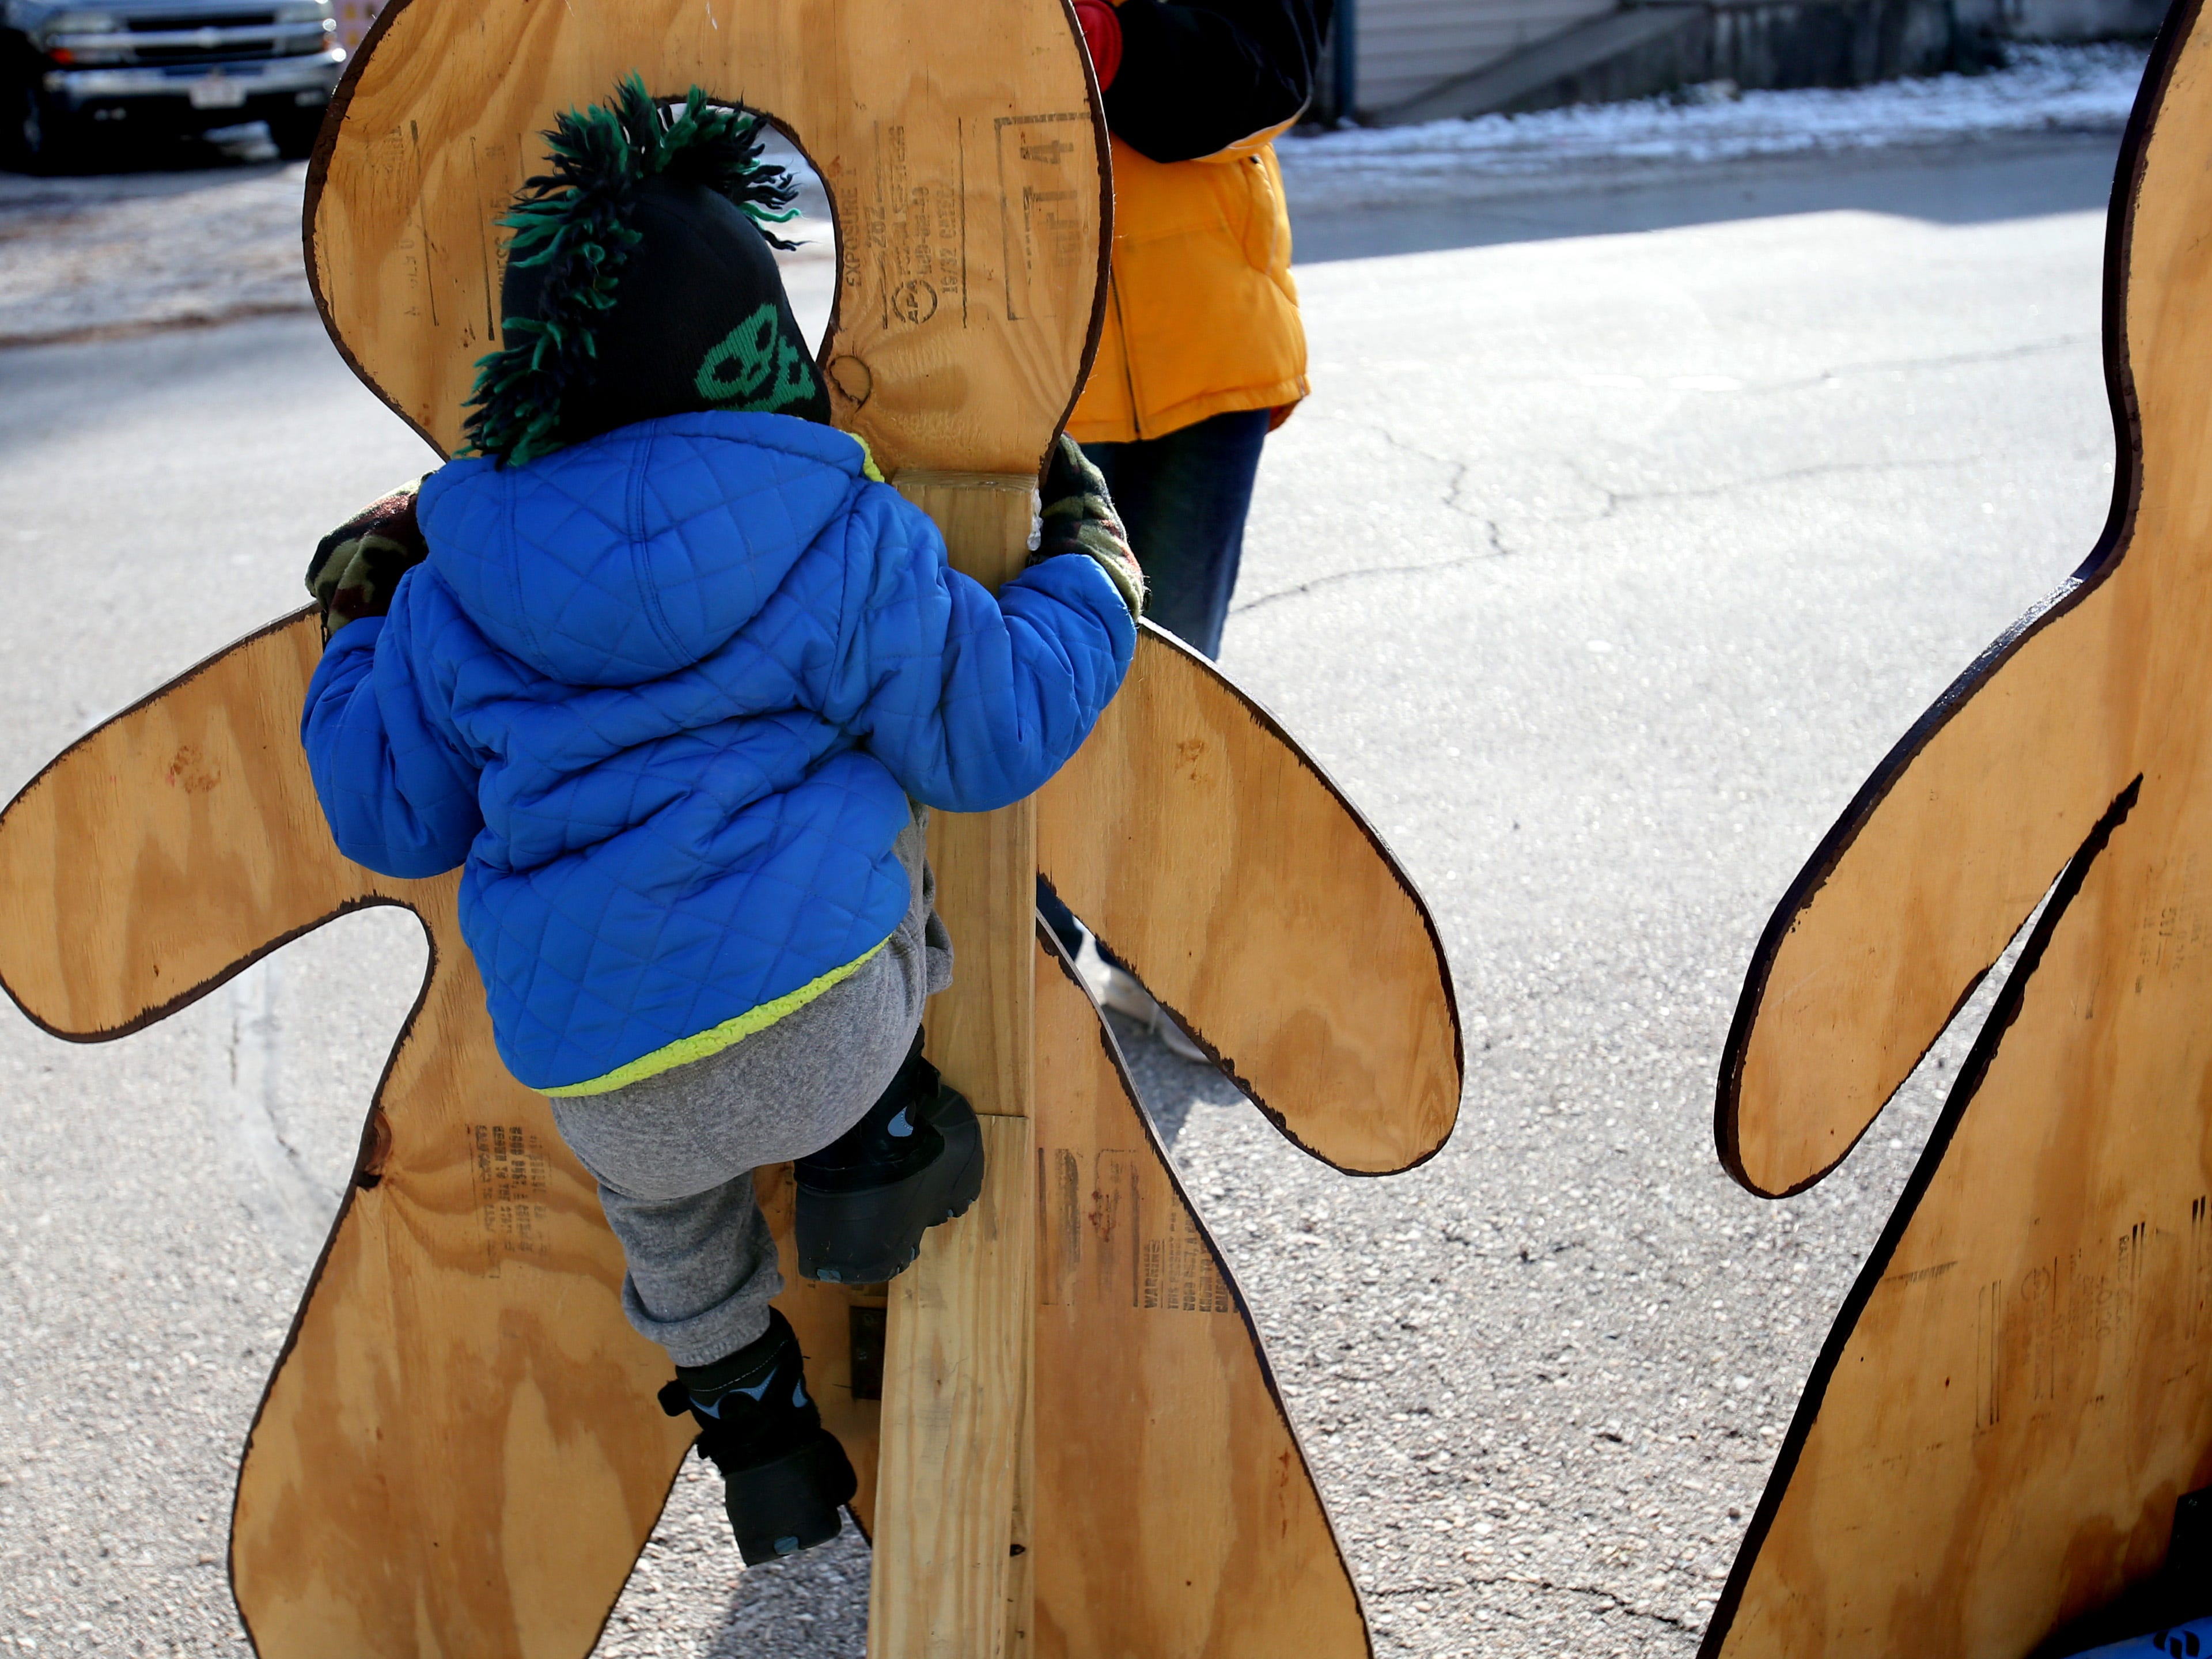 Marshall Witek, 4, pulls himself up int a face cutout for a photograph during Christmas in Wales on Dec. 8.